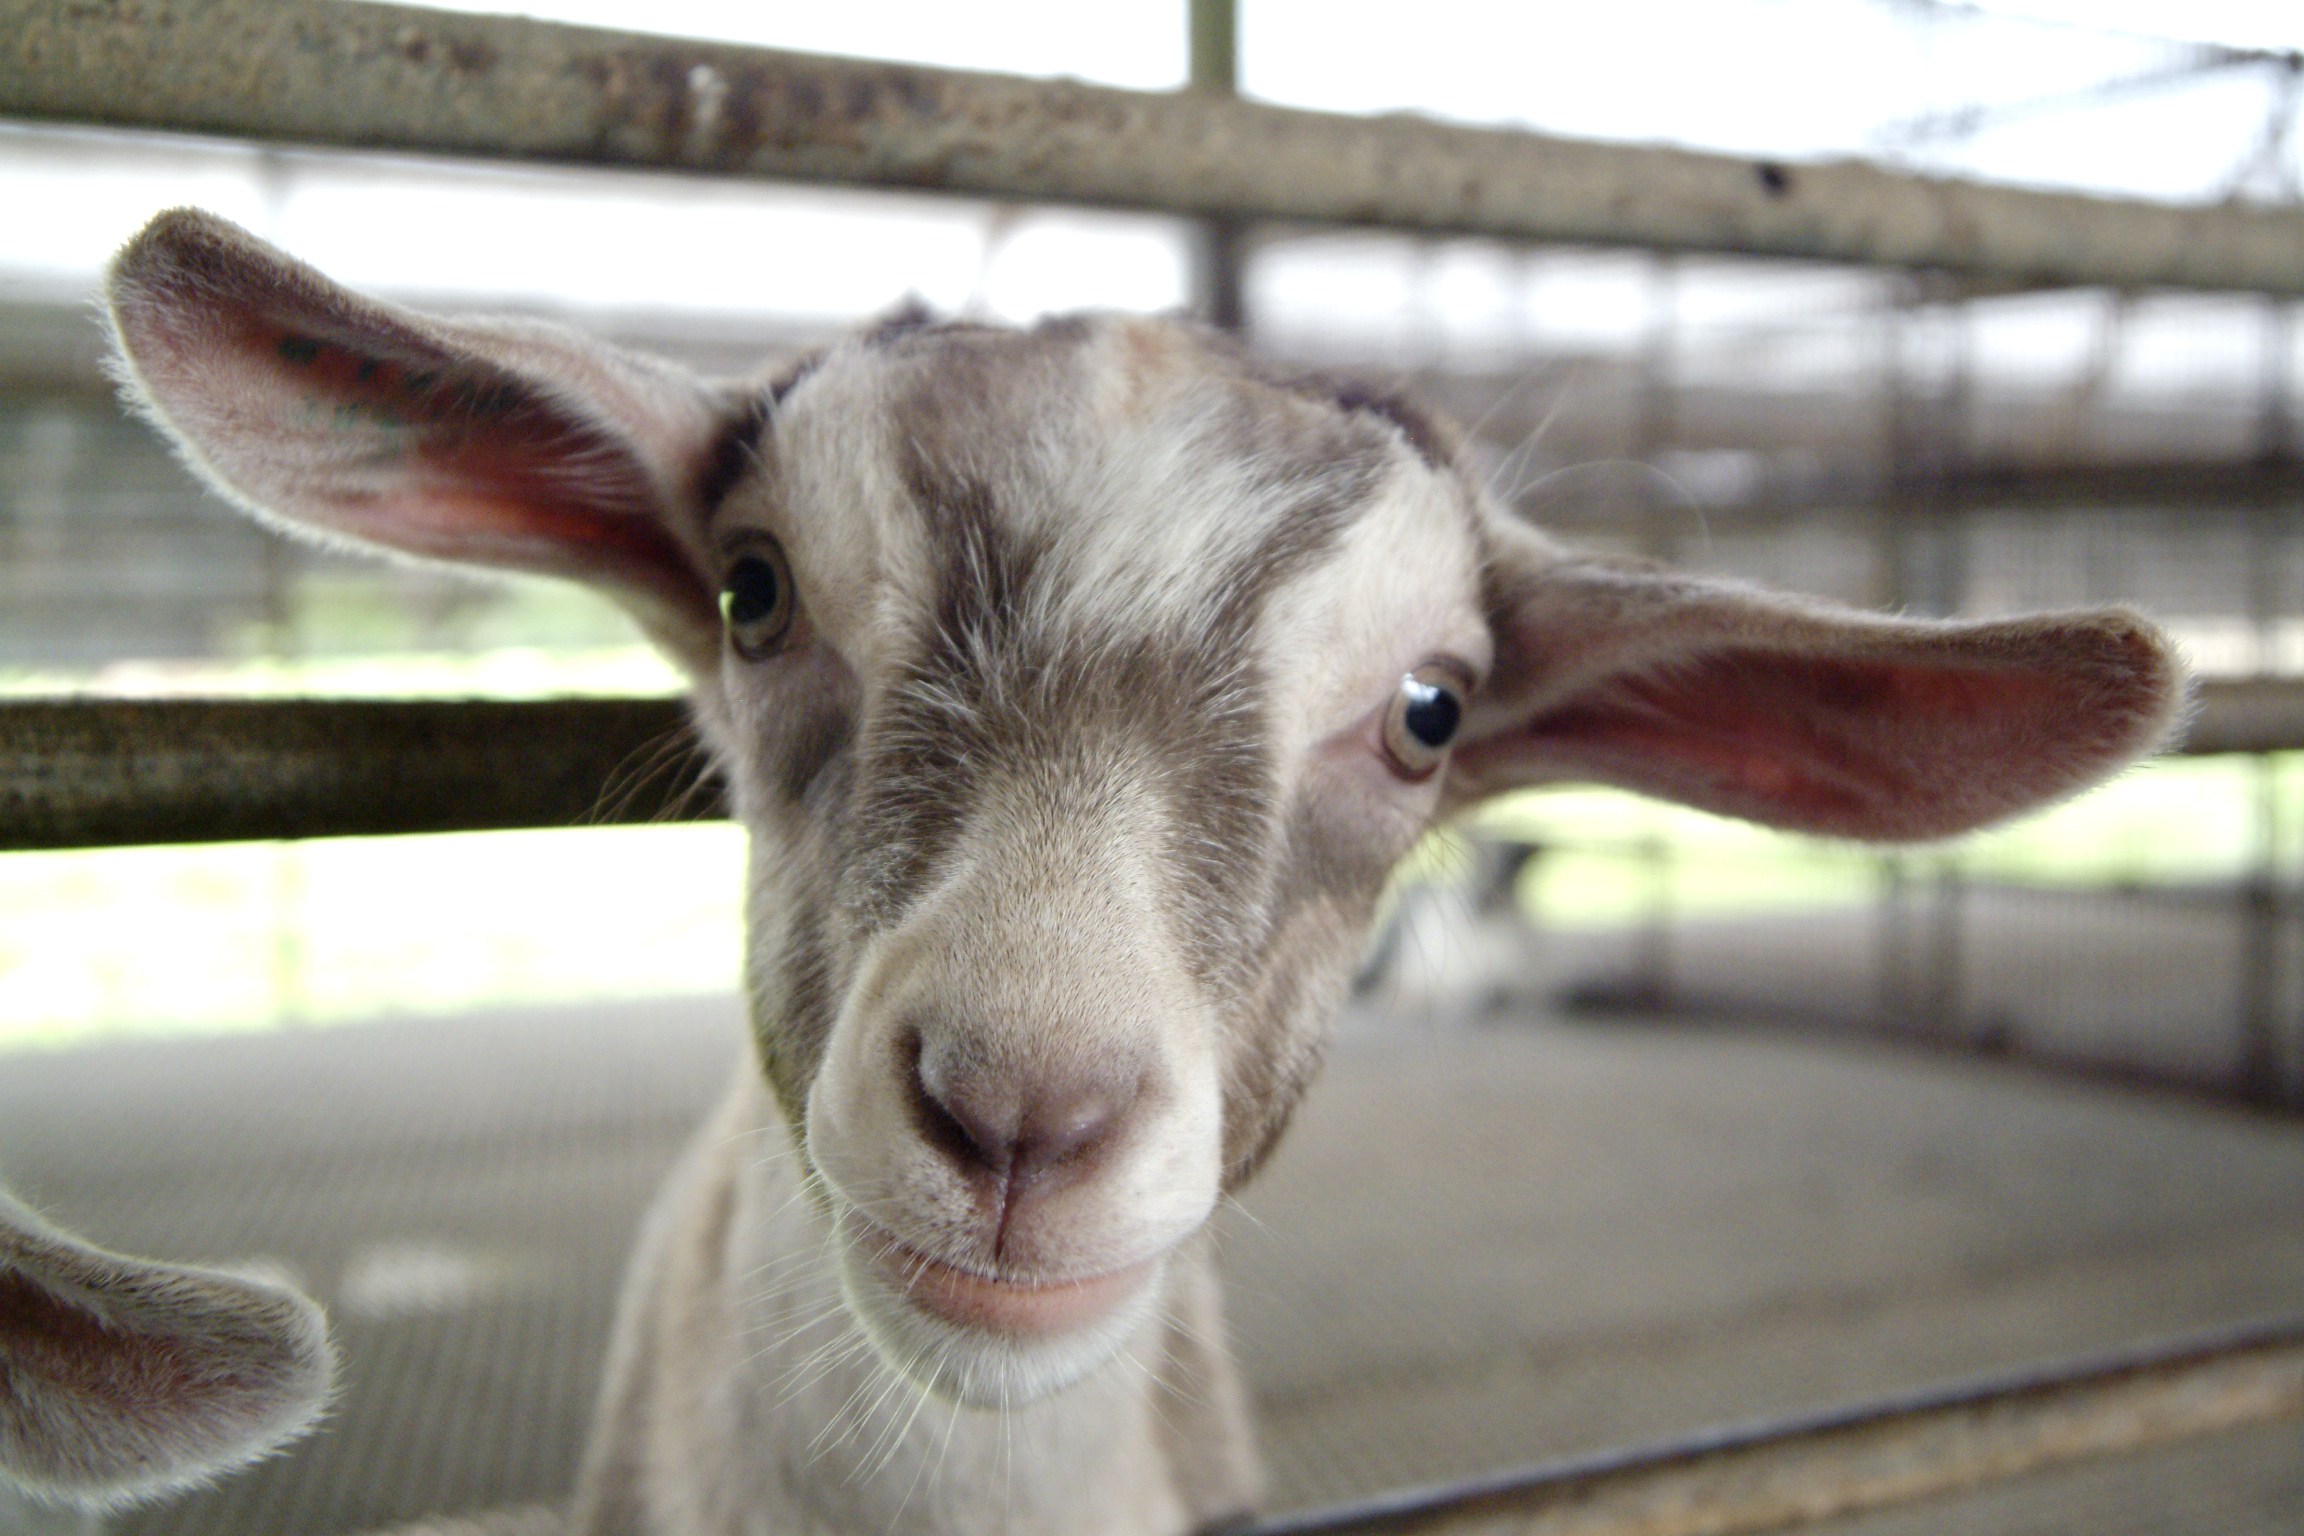 Get upclose with goats at Hay Dairies